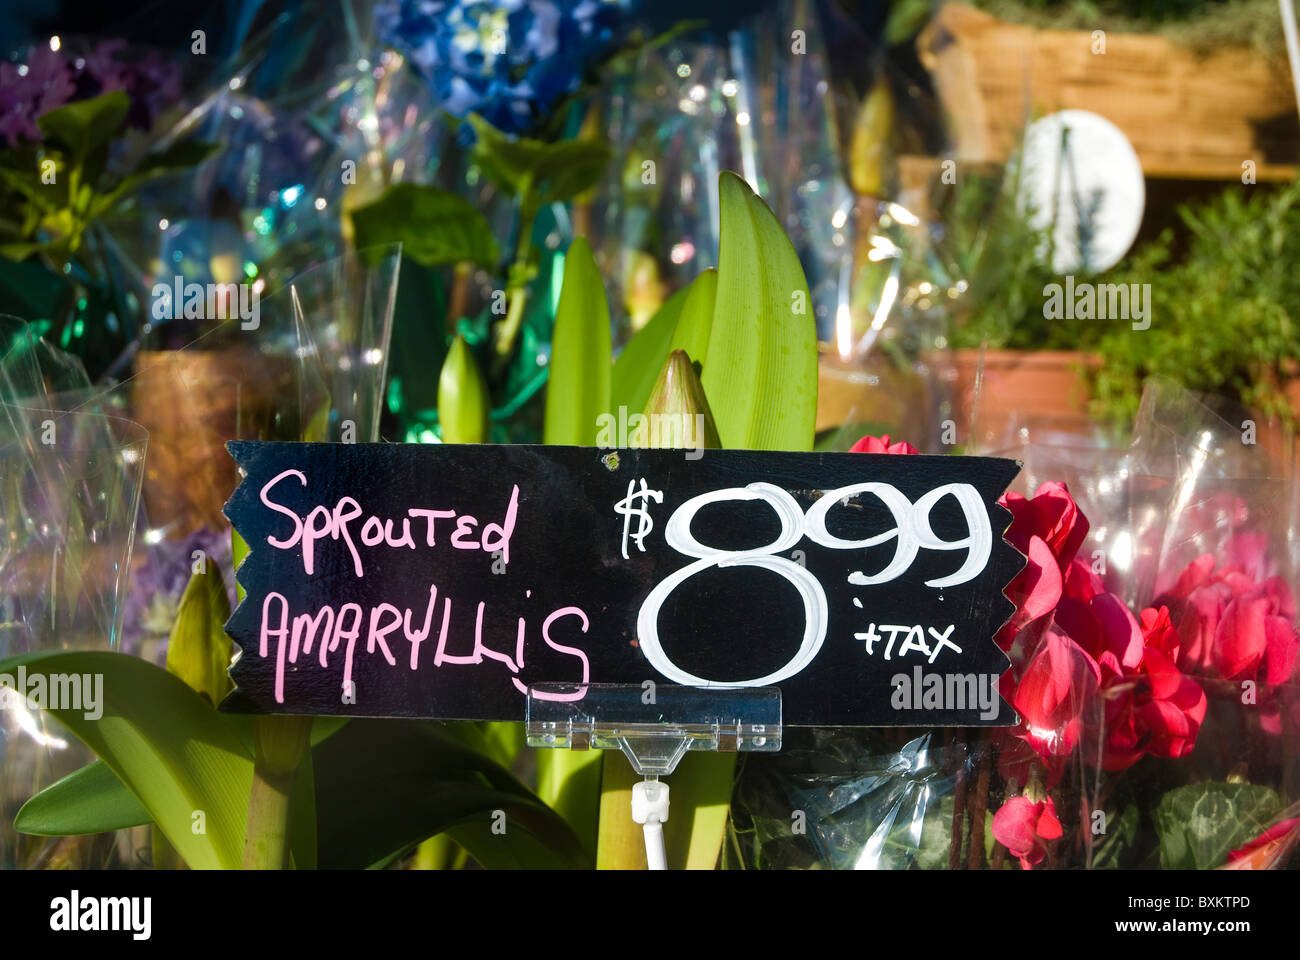 Sprouted amaryllis $8.99 sign at flower stall Stock Photo